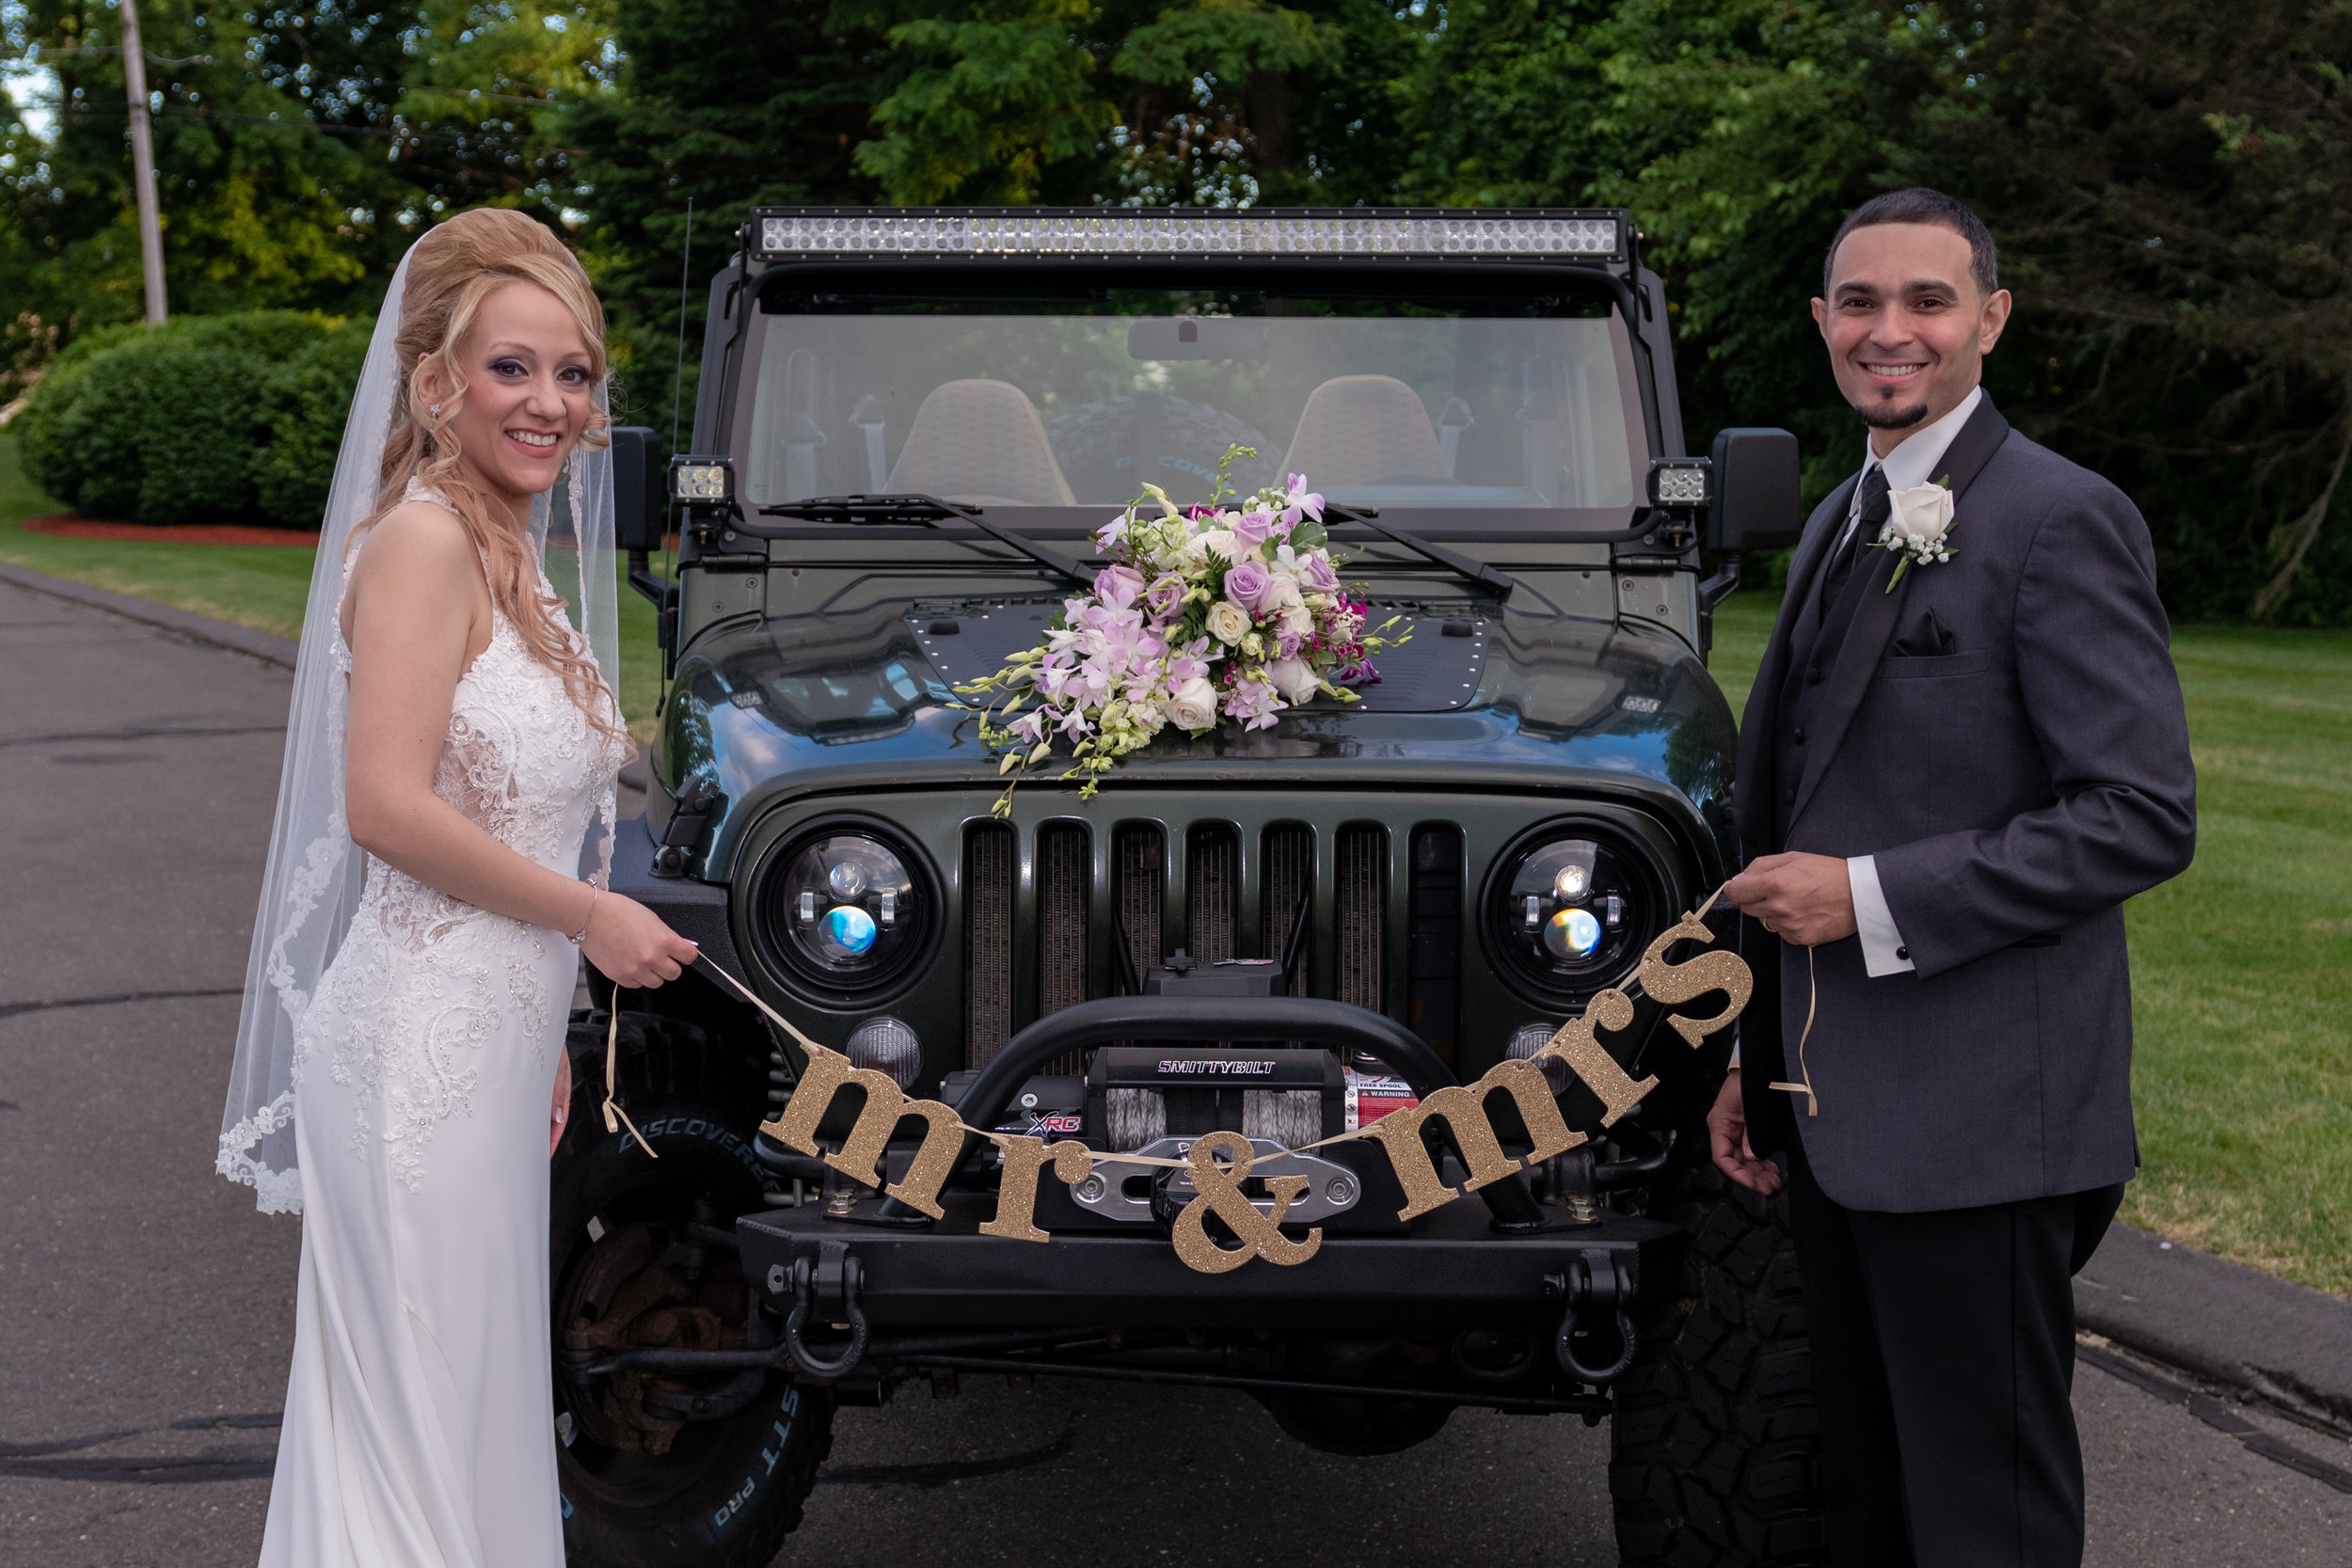 MR AND MRS IN FRONT OF JEEP.jpg